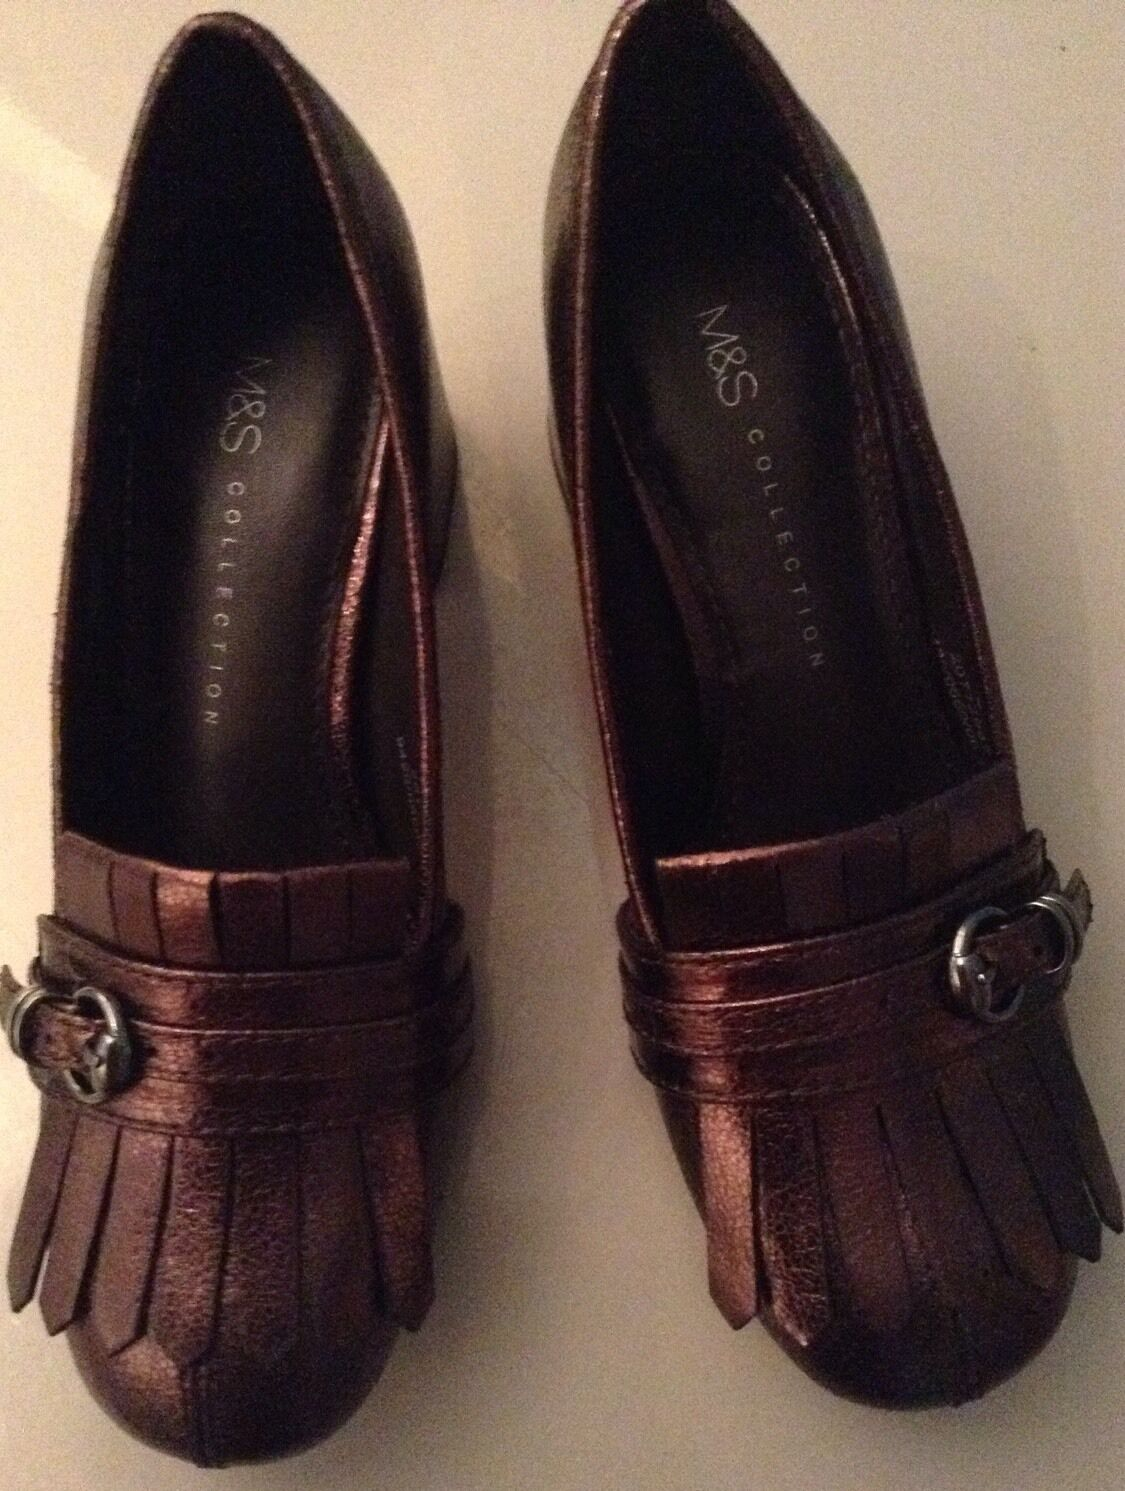 LOVELY M&S COLLECTION 7.5 LADIES SHOES, SIZE 7.5 COLLECTION , BNWT 7a9054